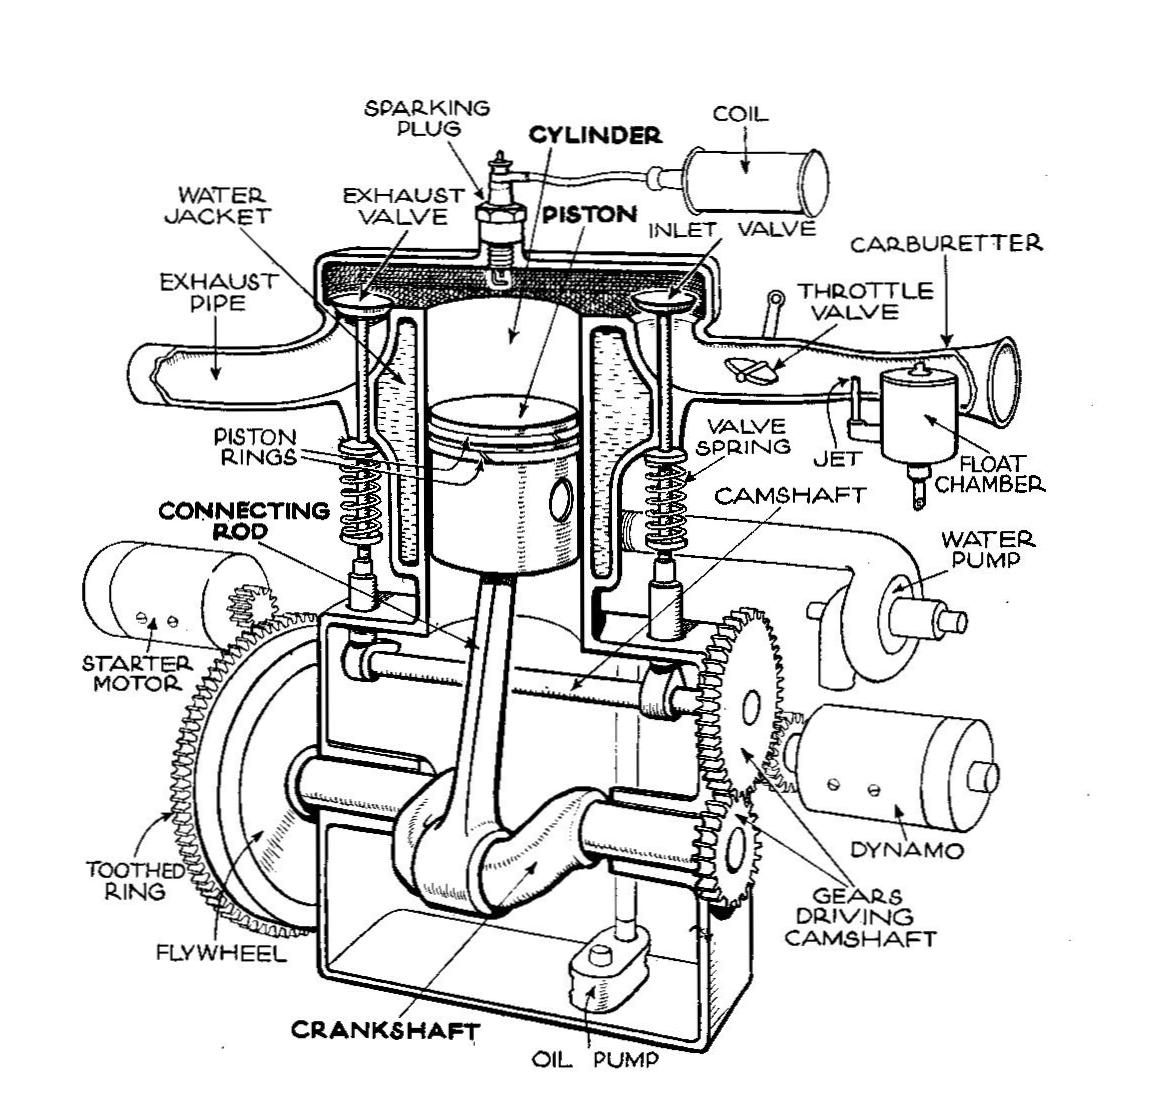 1996 Toyota Ta a 3 4 Engine Diagram together with Chevrolet 2006 Equinox Cooling System Diagram additionally Engine Radiator Location moreover Oil Pump Replacement Cost furthermore 2012 Chevy Sonic Engine Diagram. on 2011 cruze radiator fan wiring diagram